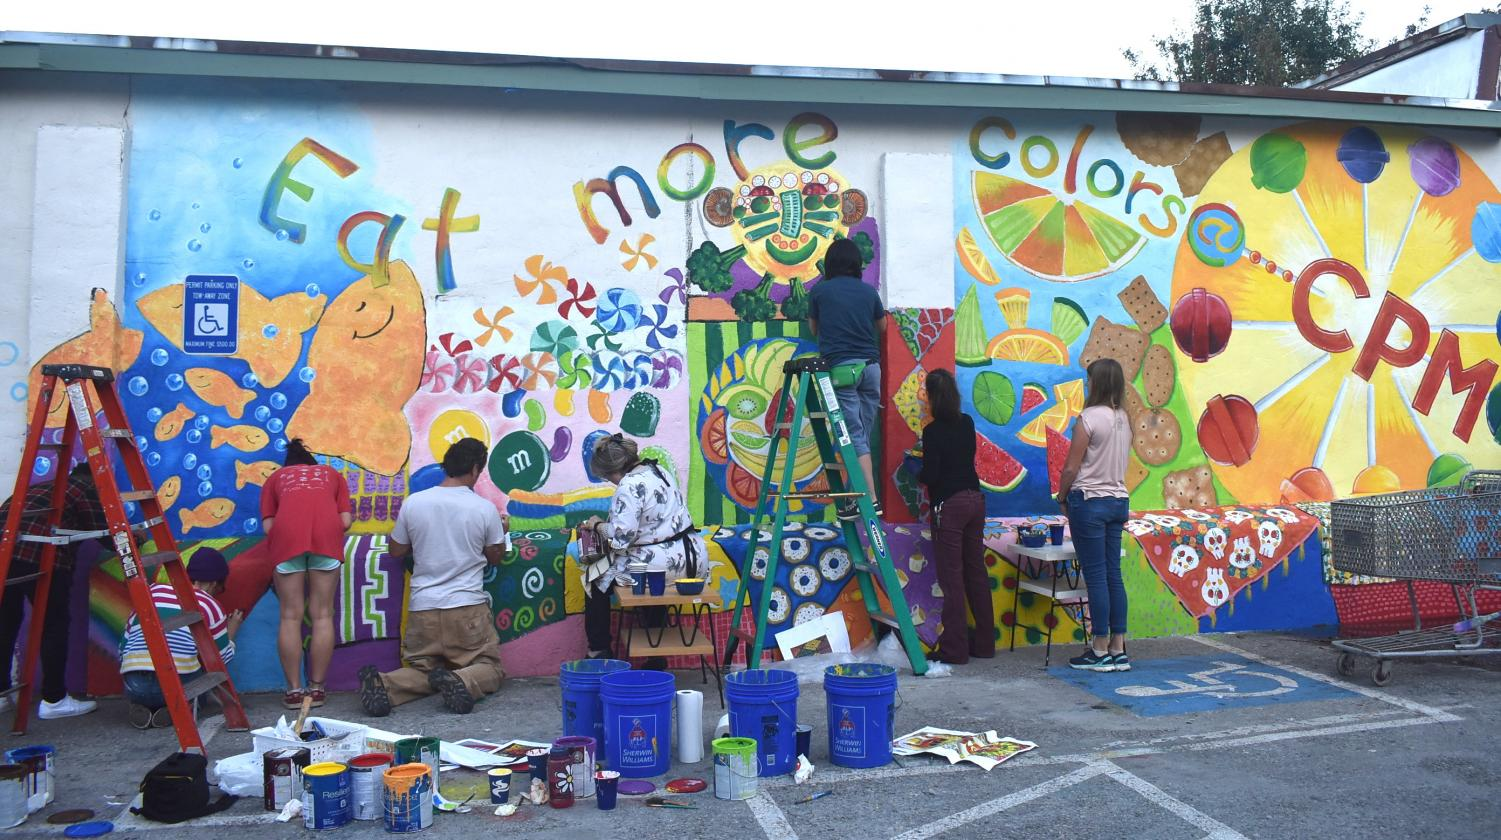 Grady Cluster teachers and students paint community mural on the wall of the Candler Park Market.